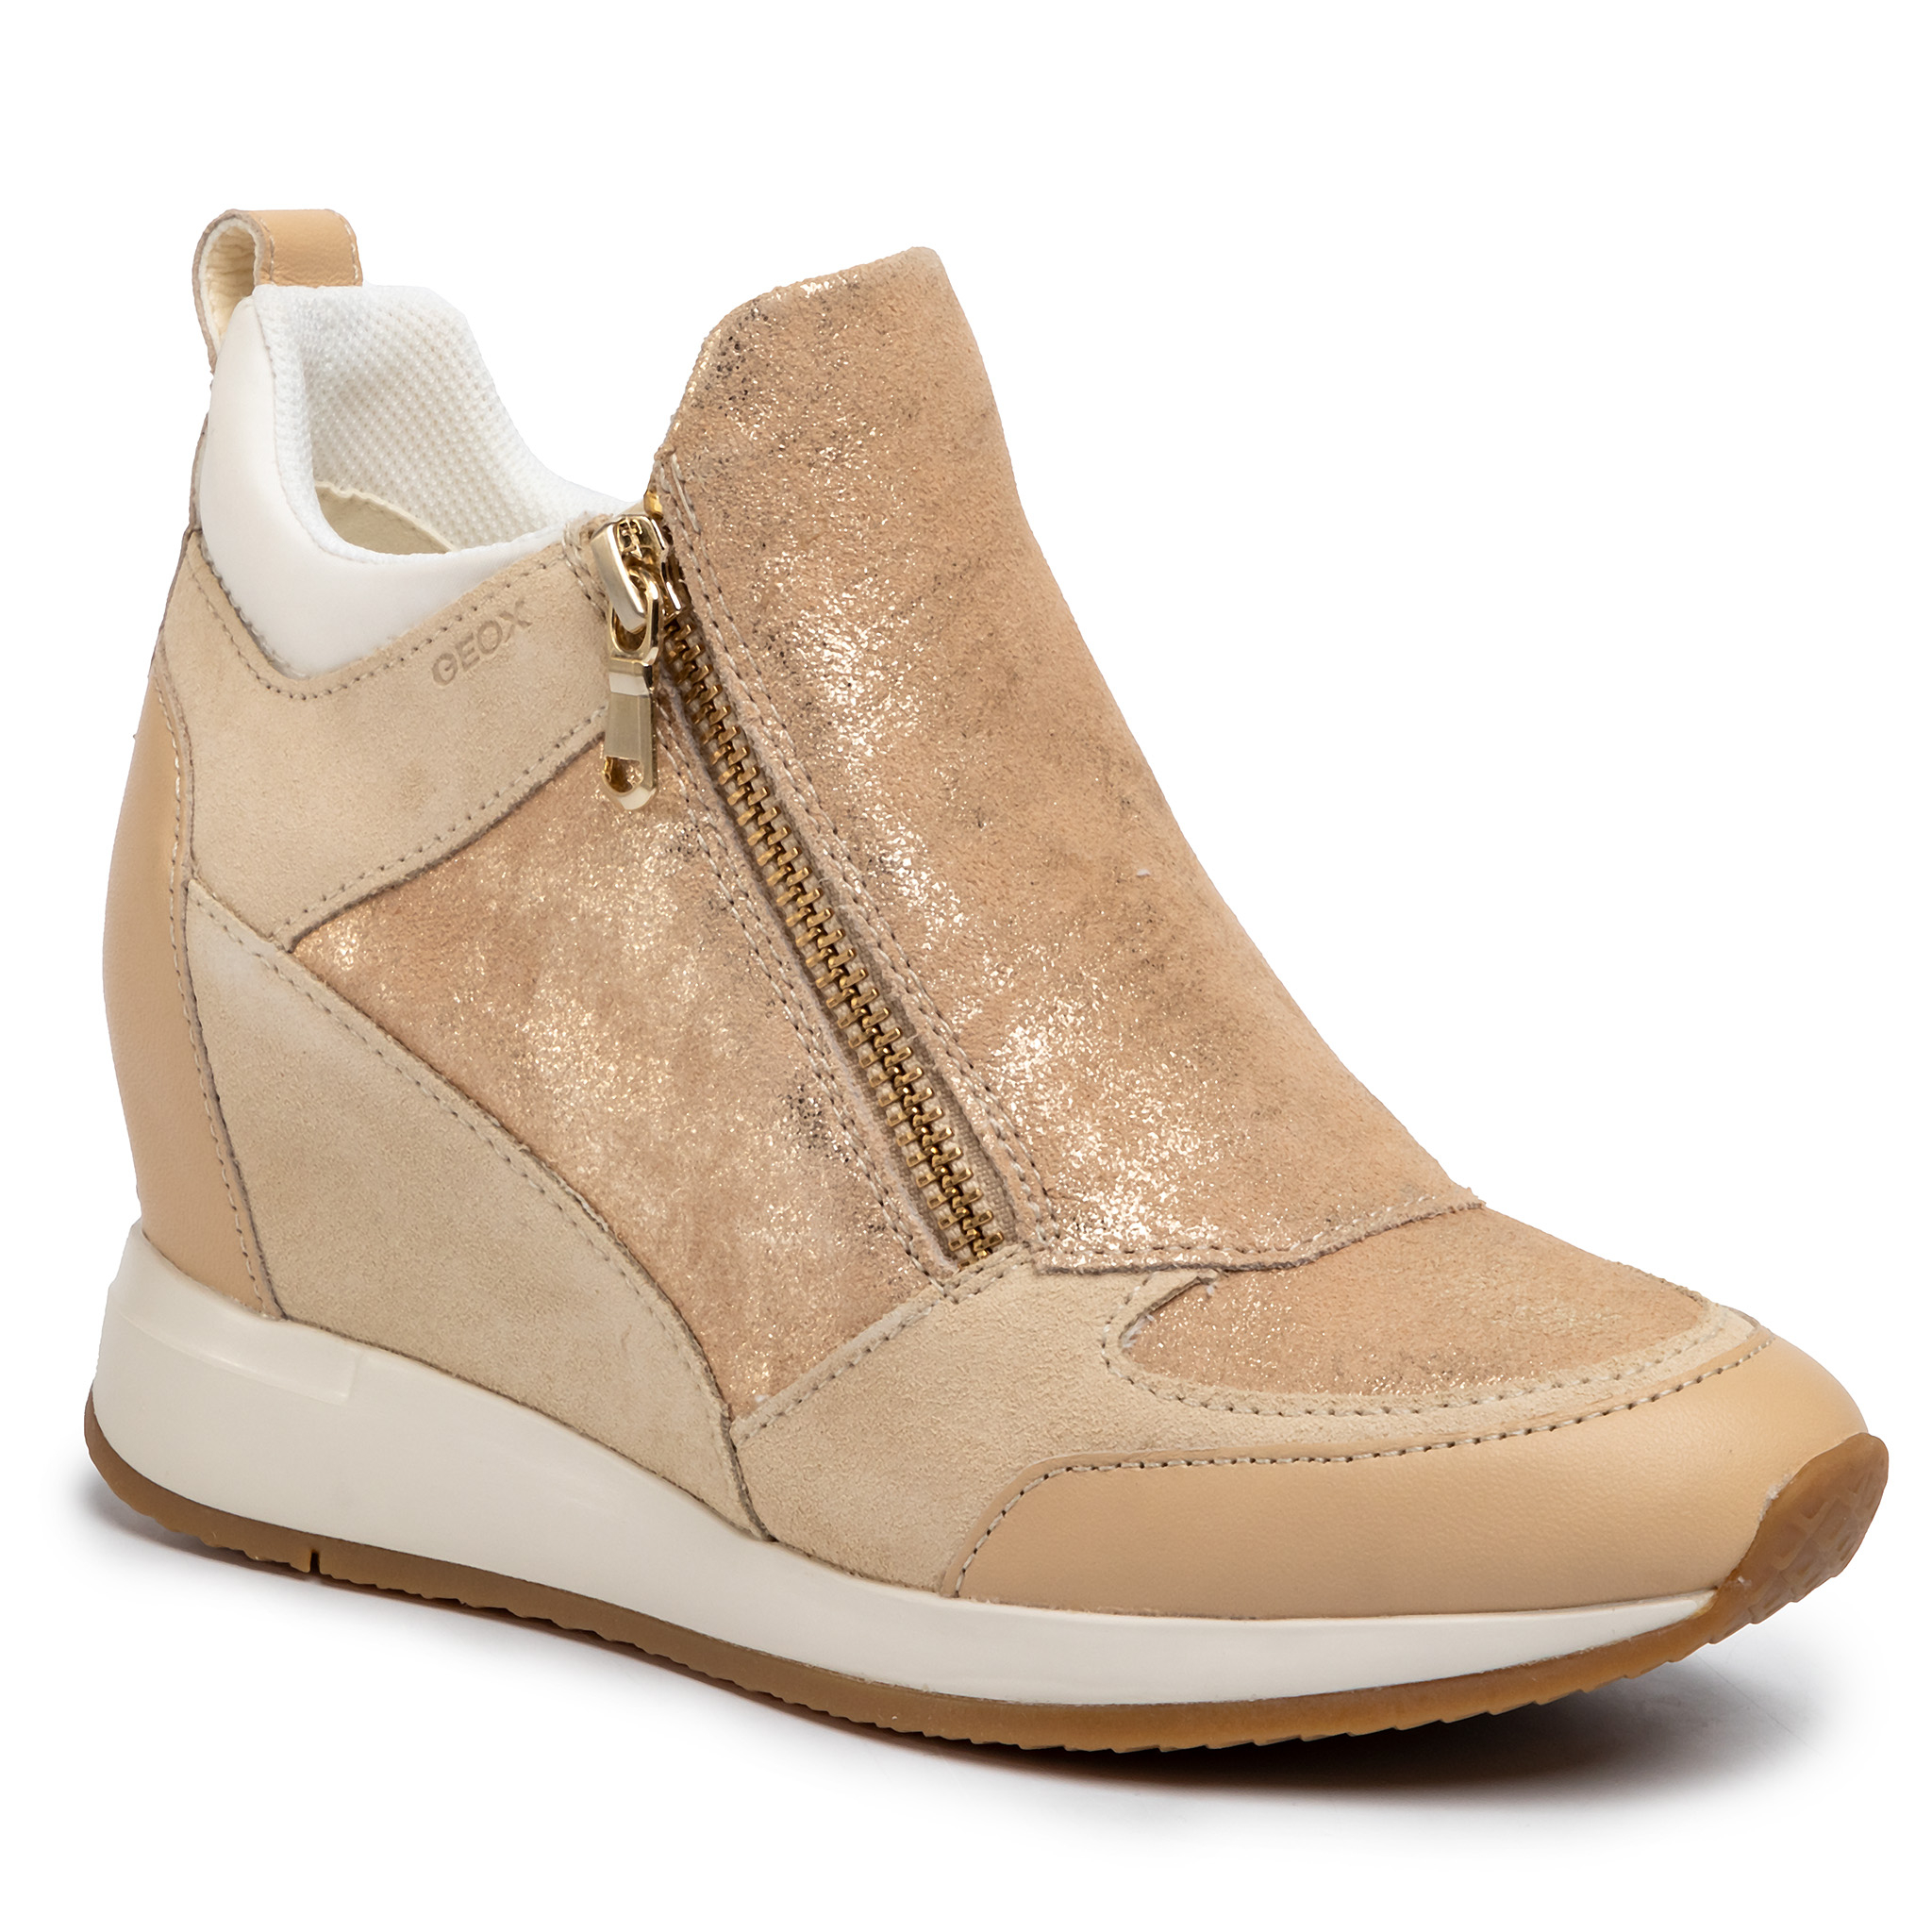 Sneakers GEOX - D Nydame E D020QE 07722 C5004 Sand